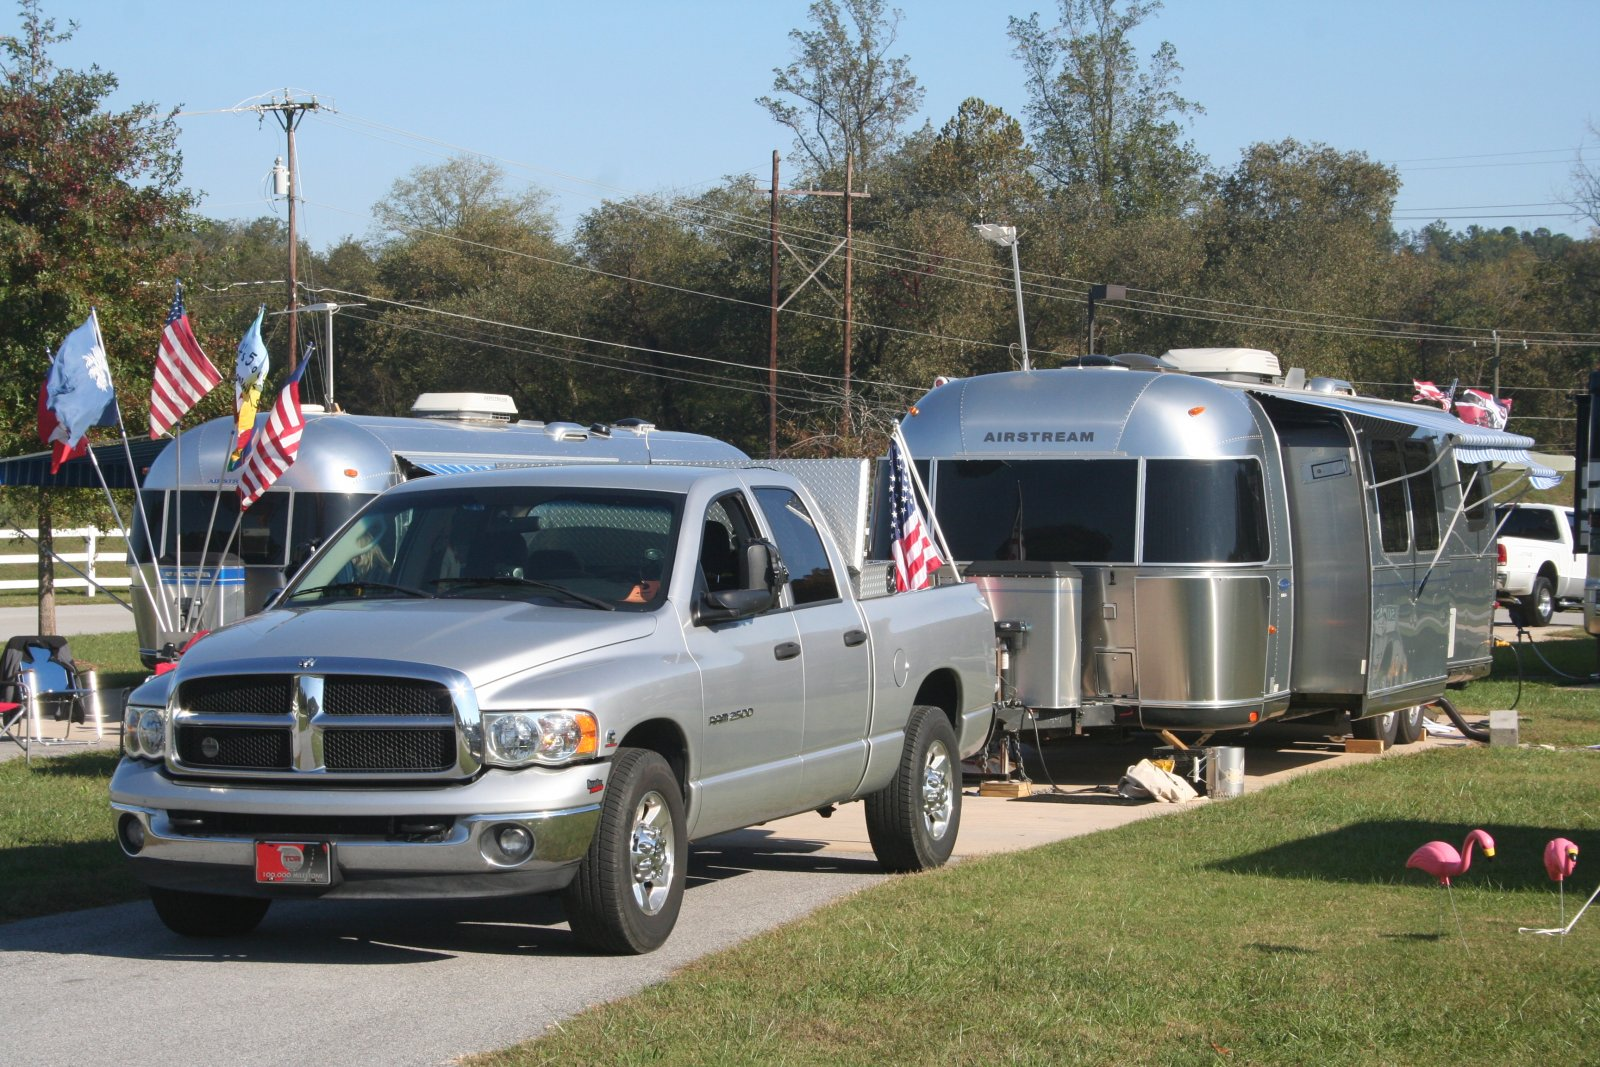 Click image for larger version  Name:Airstream 072.jpg Views:70 Size:399.8 KB ID:170415